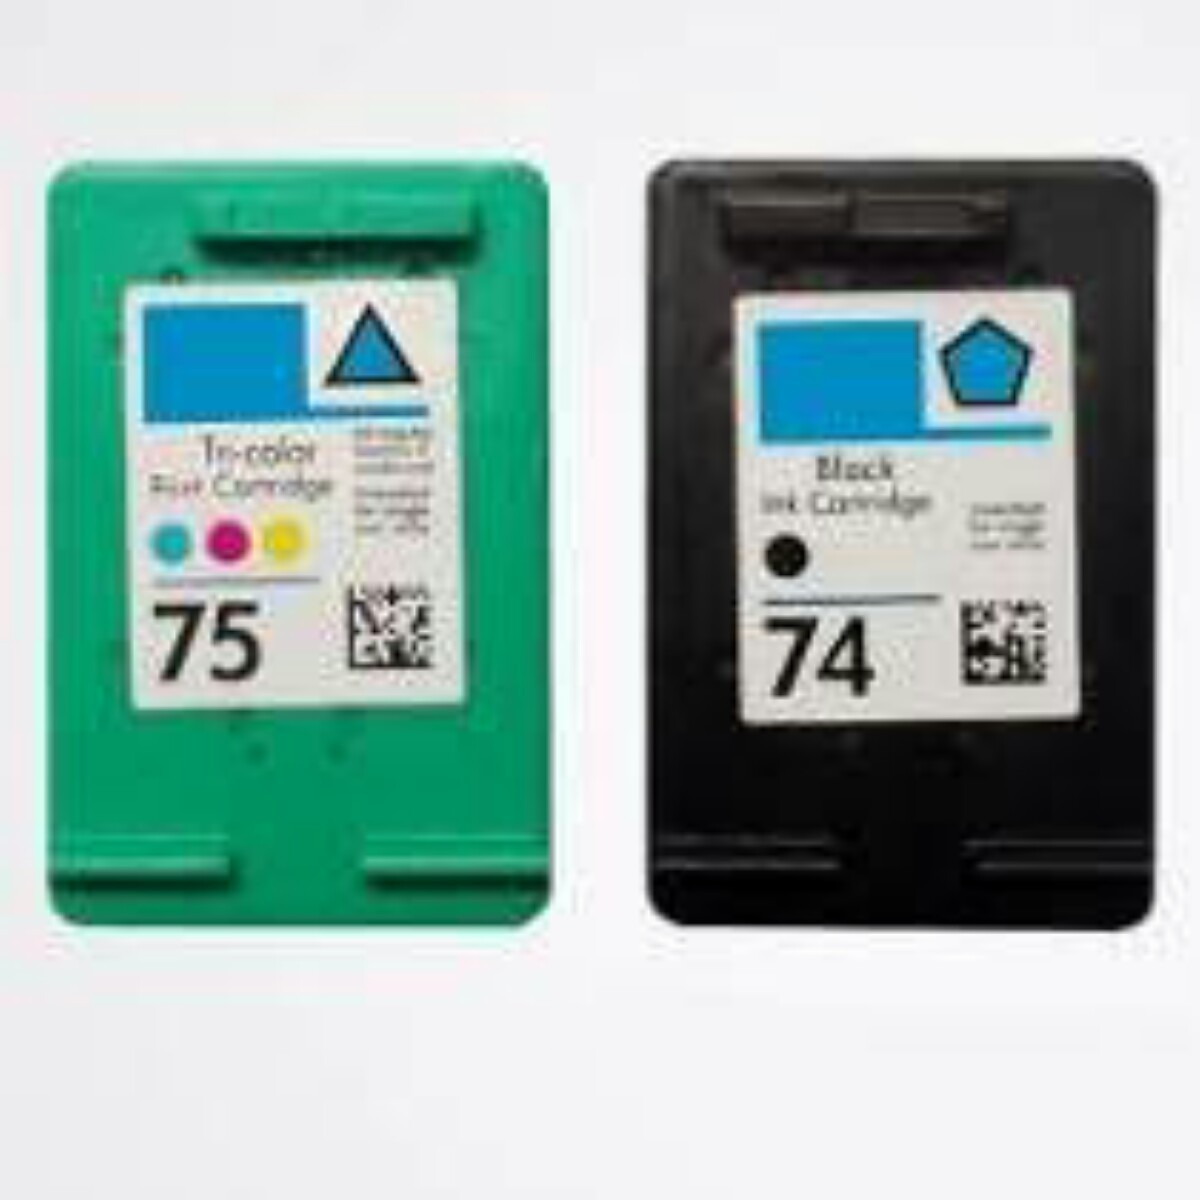 Hp photosmart d110 ink cartridge problem